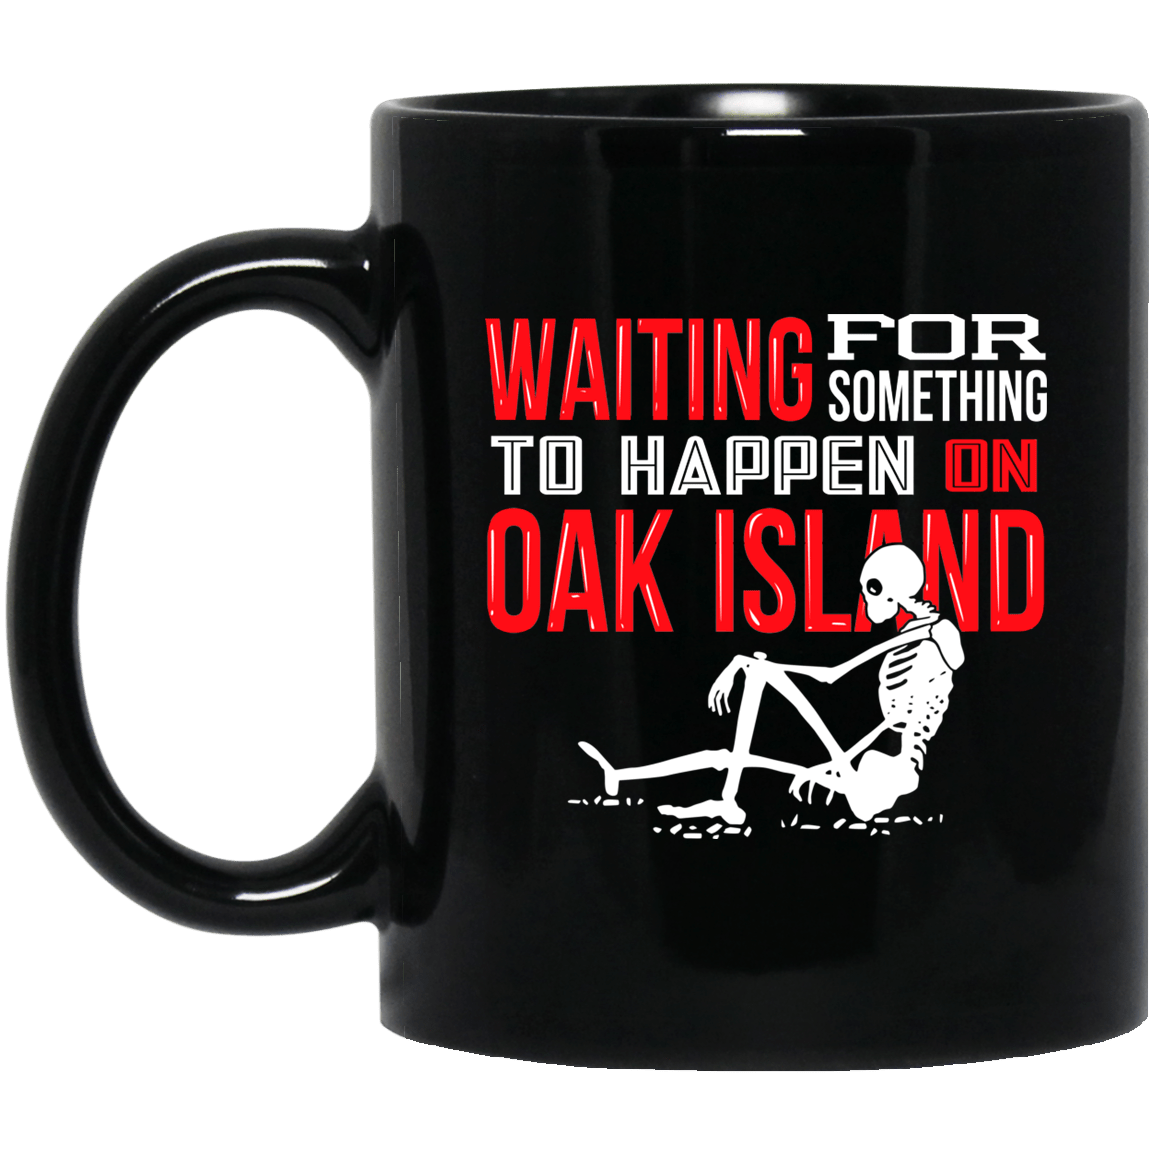 Waiting For Something To Happen On Oak Island Mug 1065-10181-91587441-49307 - Tee Ript